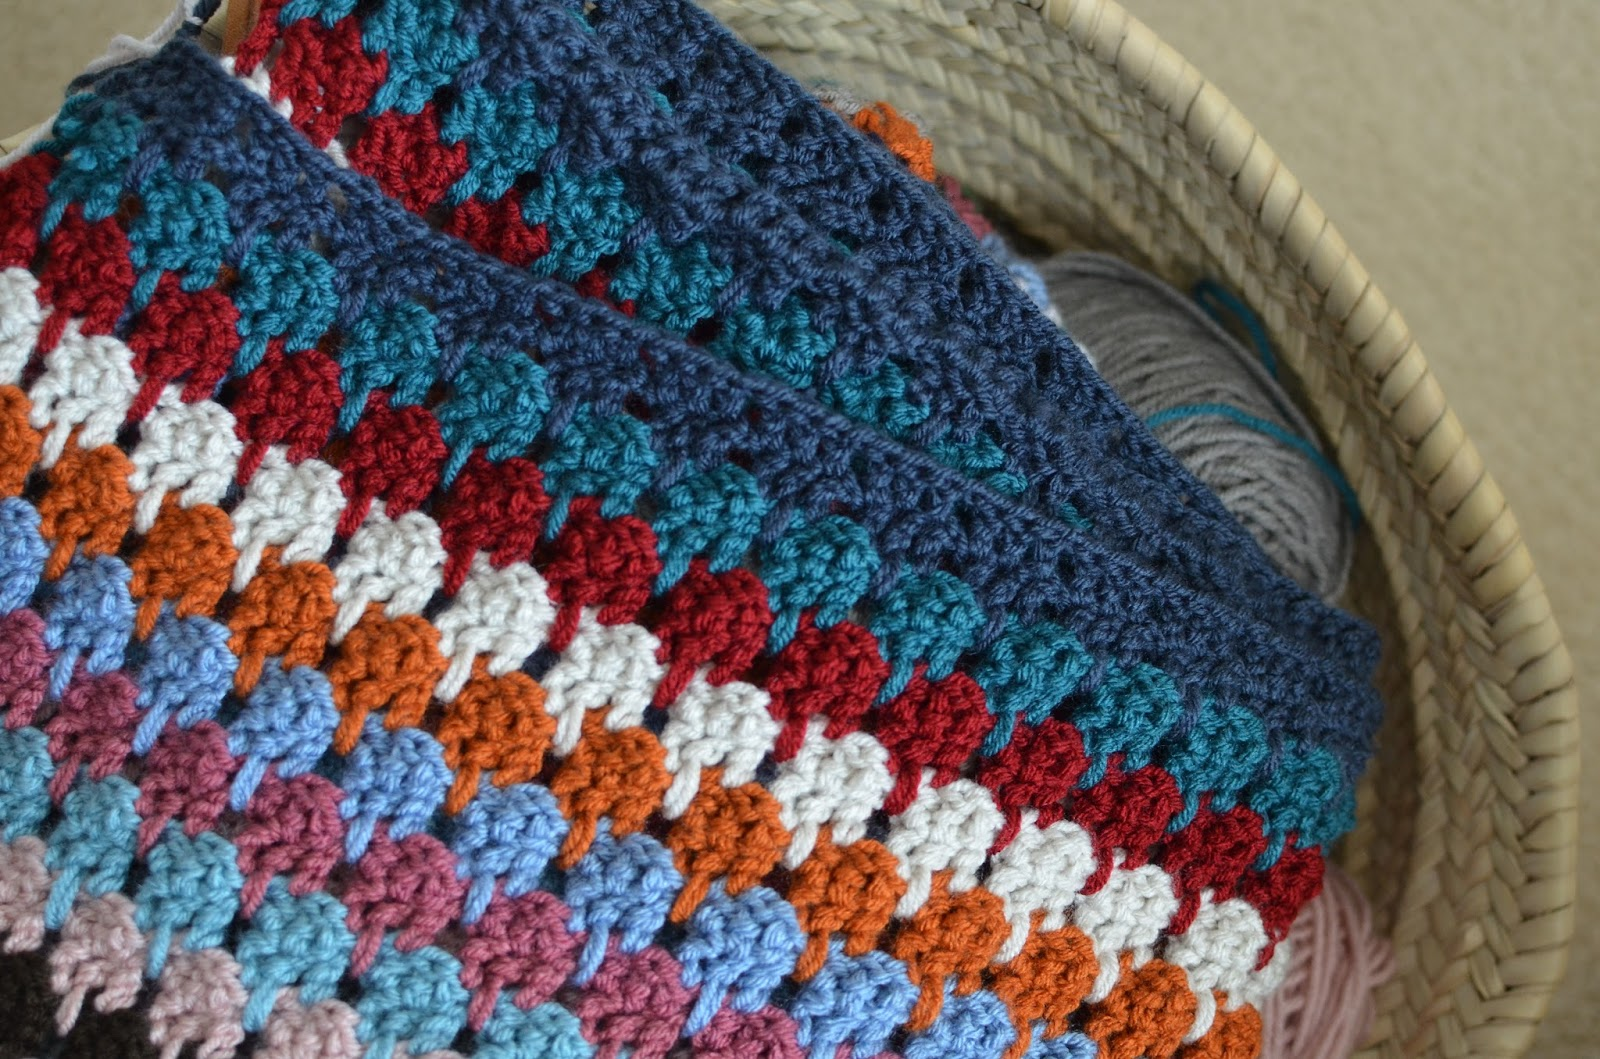 I'm Sharing The Main Crochet Project I'm Working On This Winter, An Afghan  Made With The Larksfoot Stitch Pattern I Call My Blanket Hensfoot,